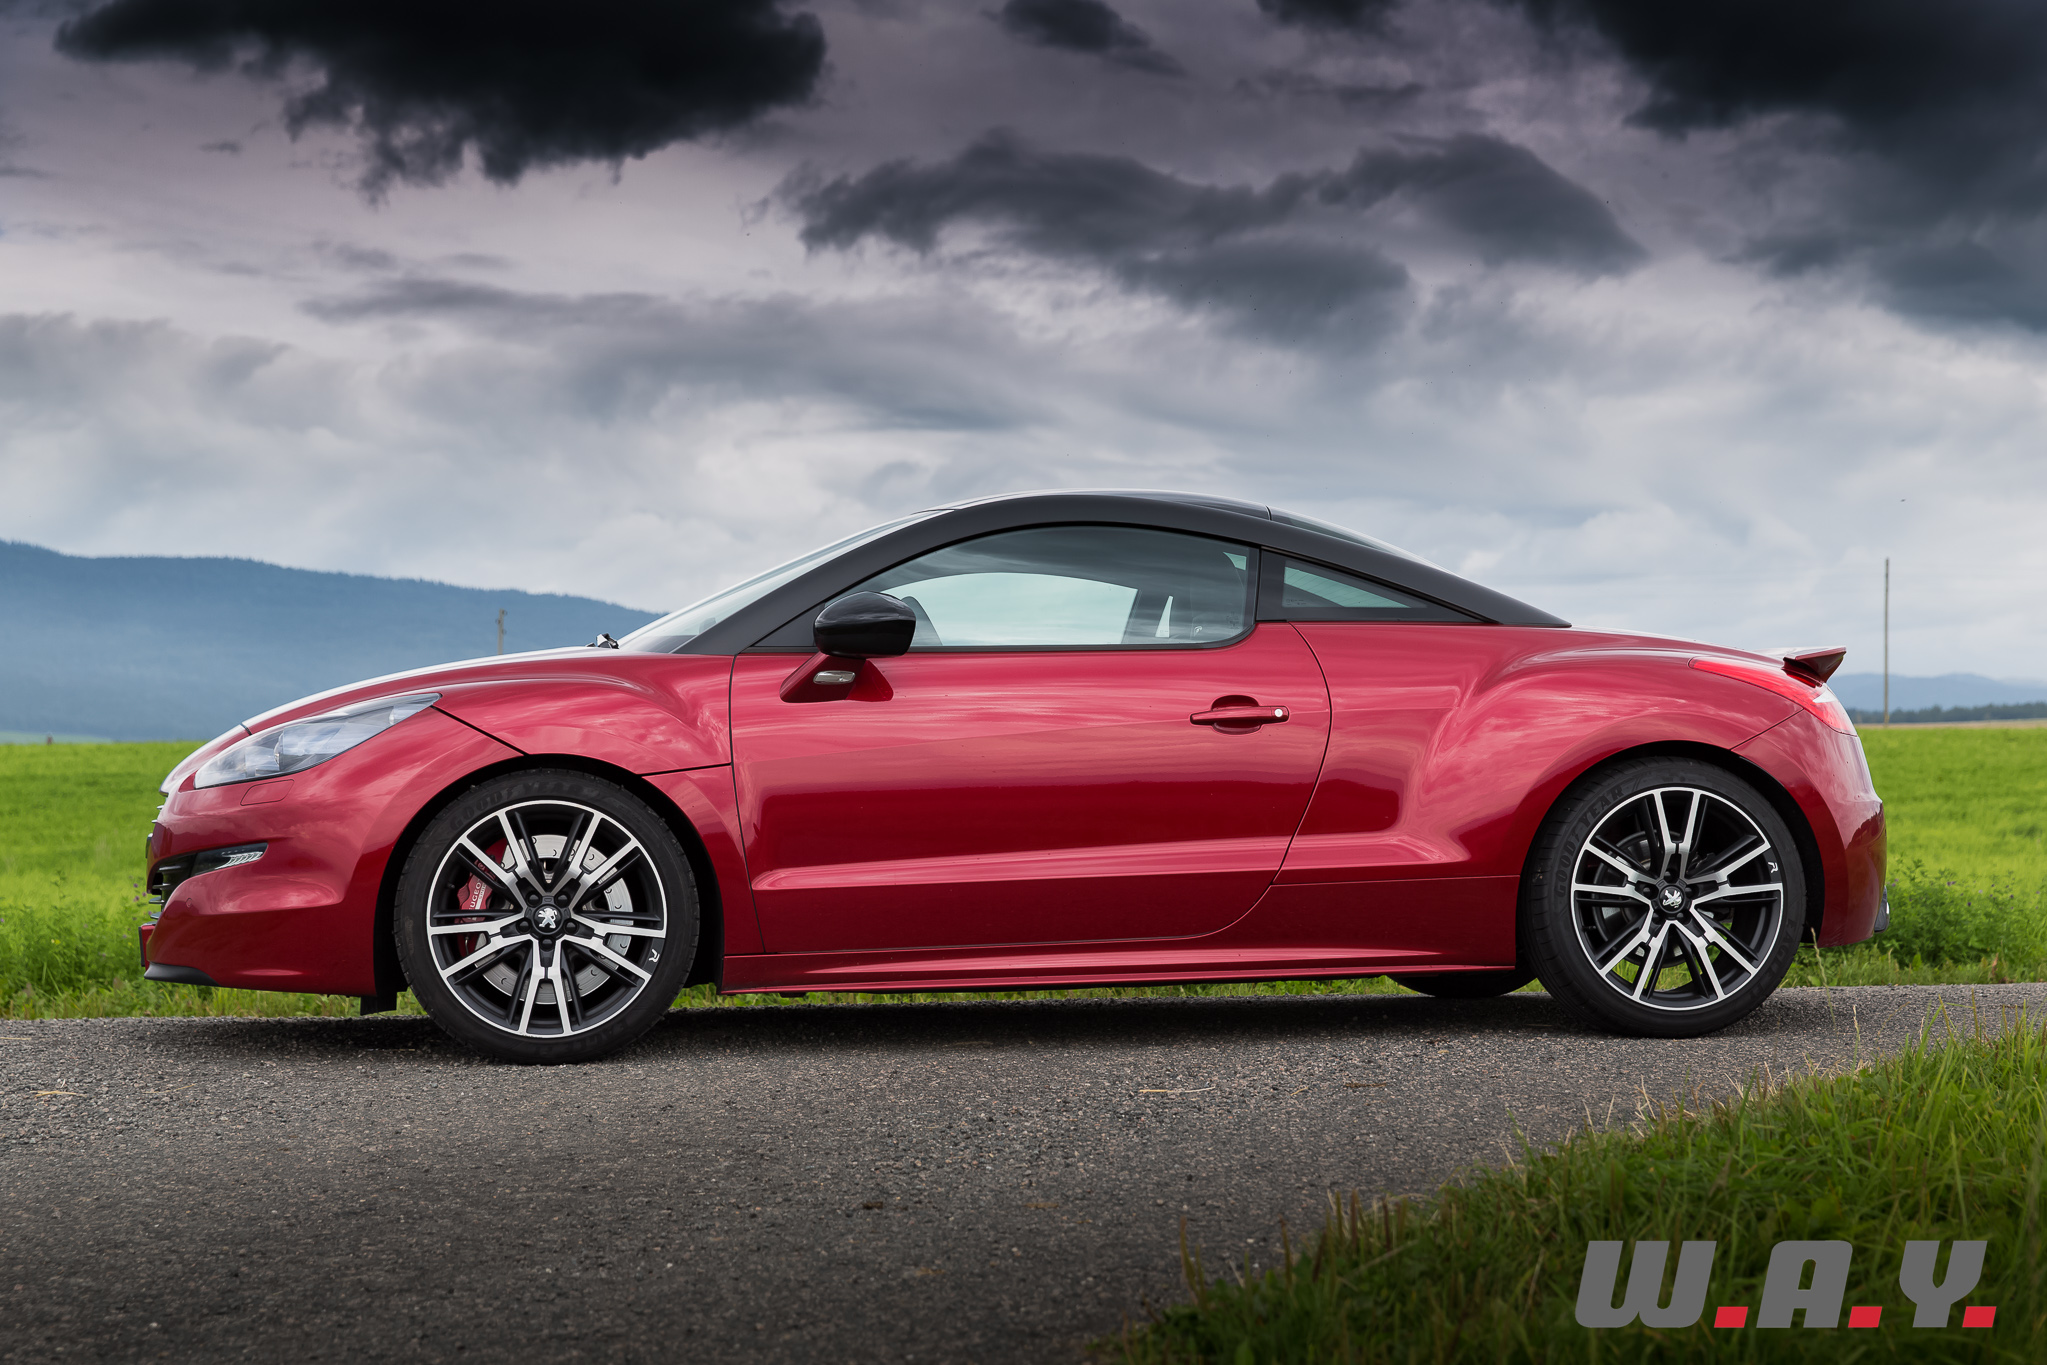 essai peugeot rcz r le lion sort ses griffes et les dents wheels and. Black Bedroom Furniture Sets. Home Design Ideas